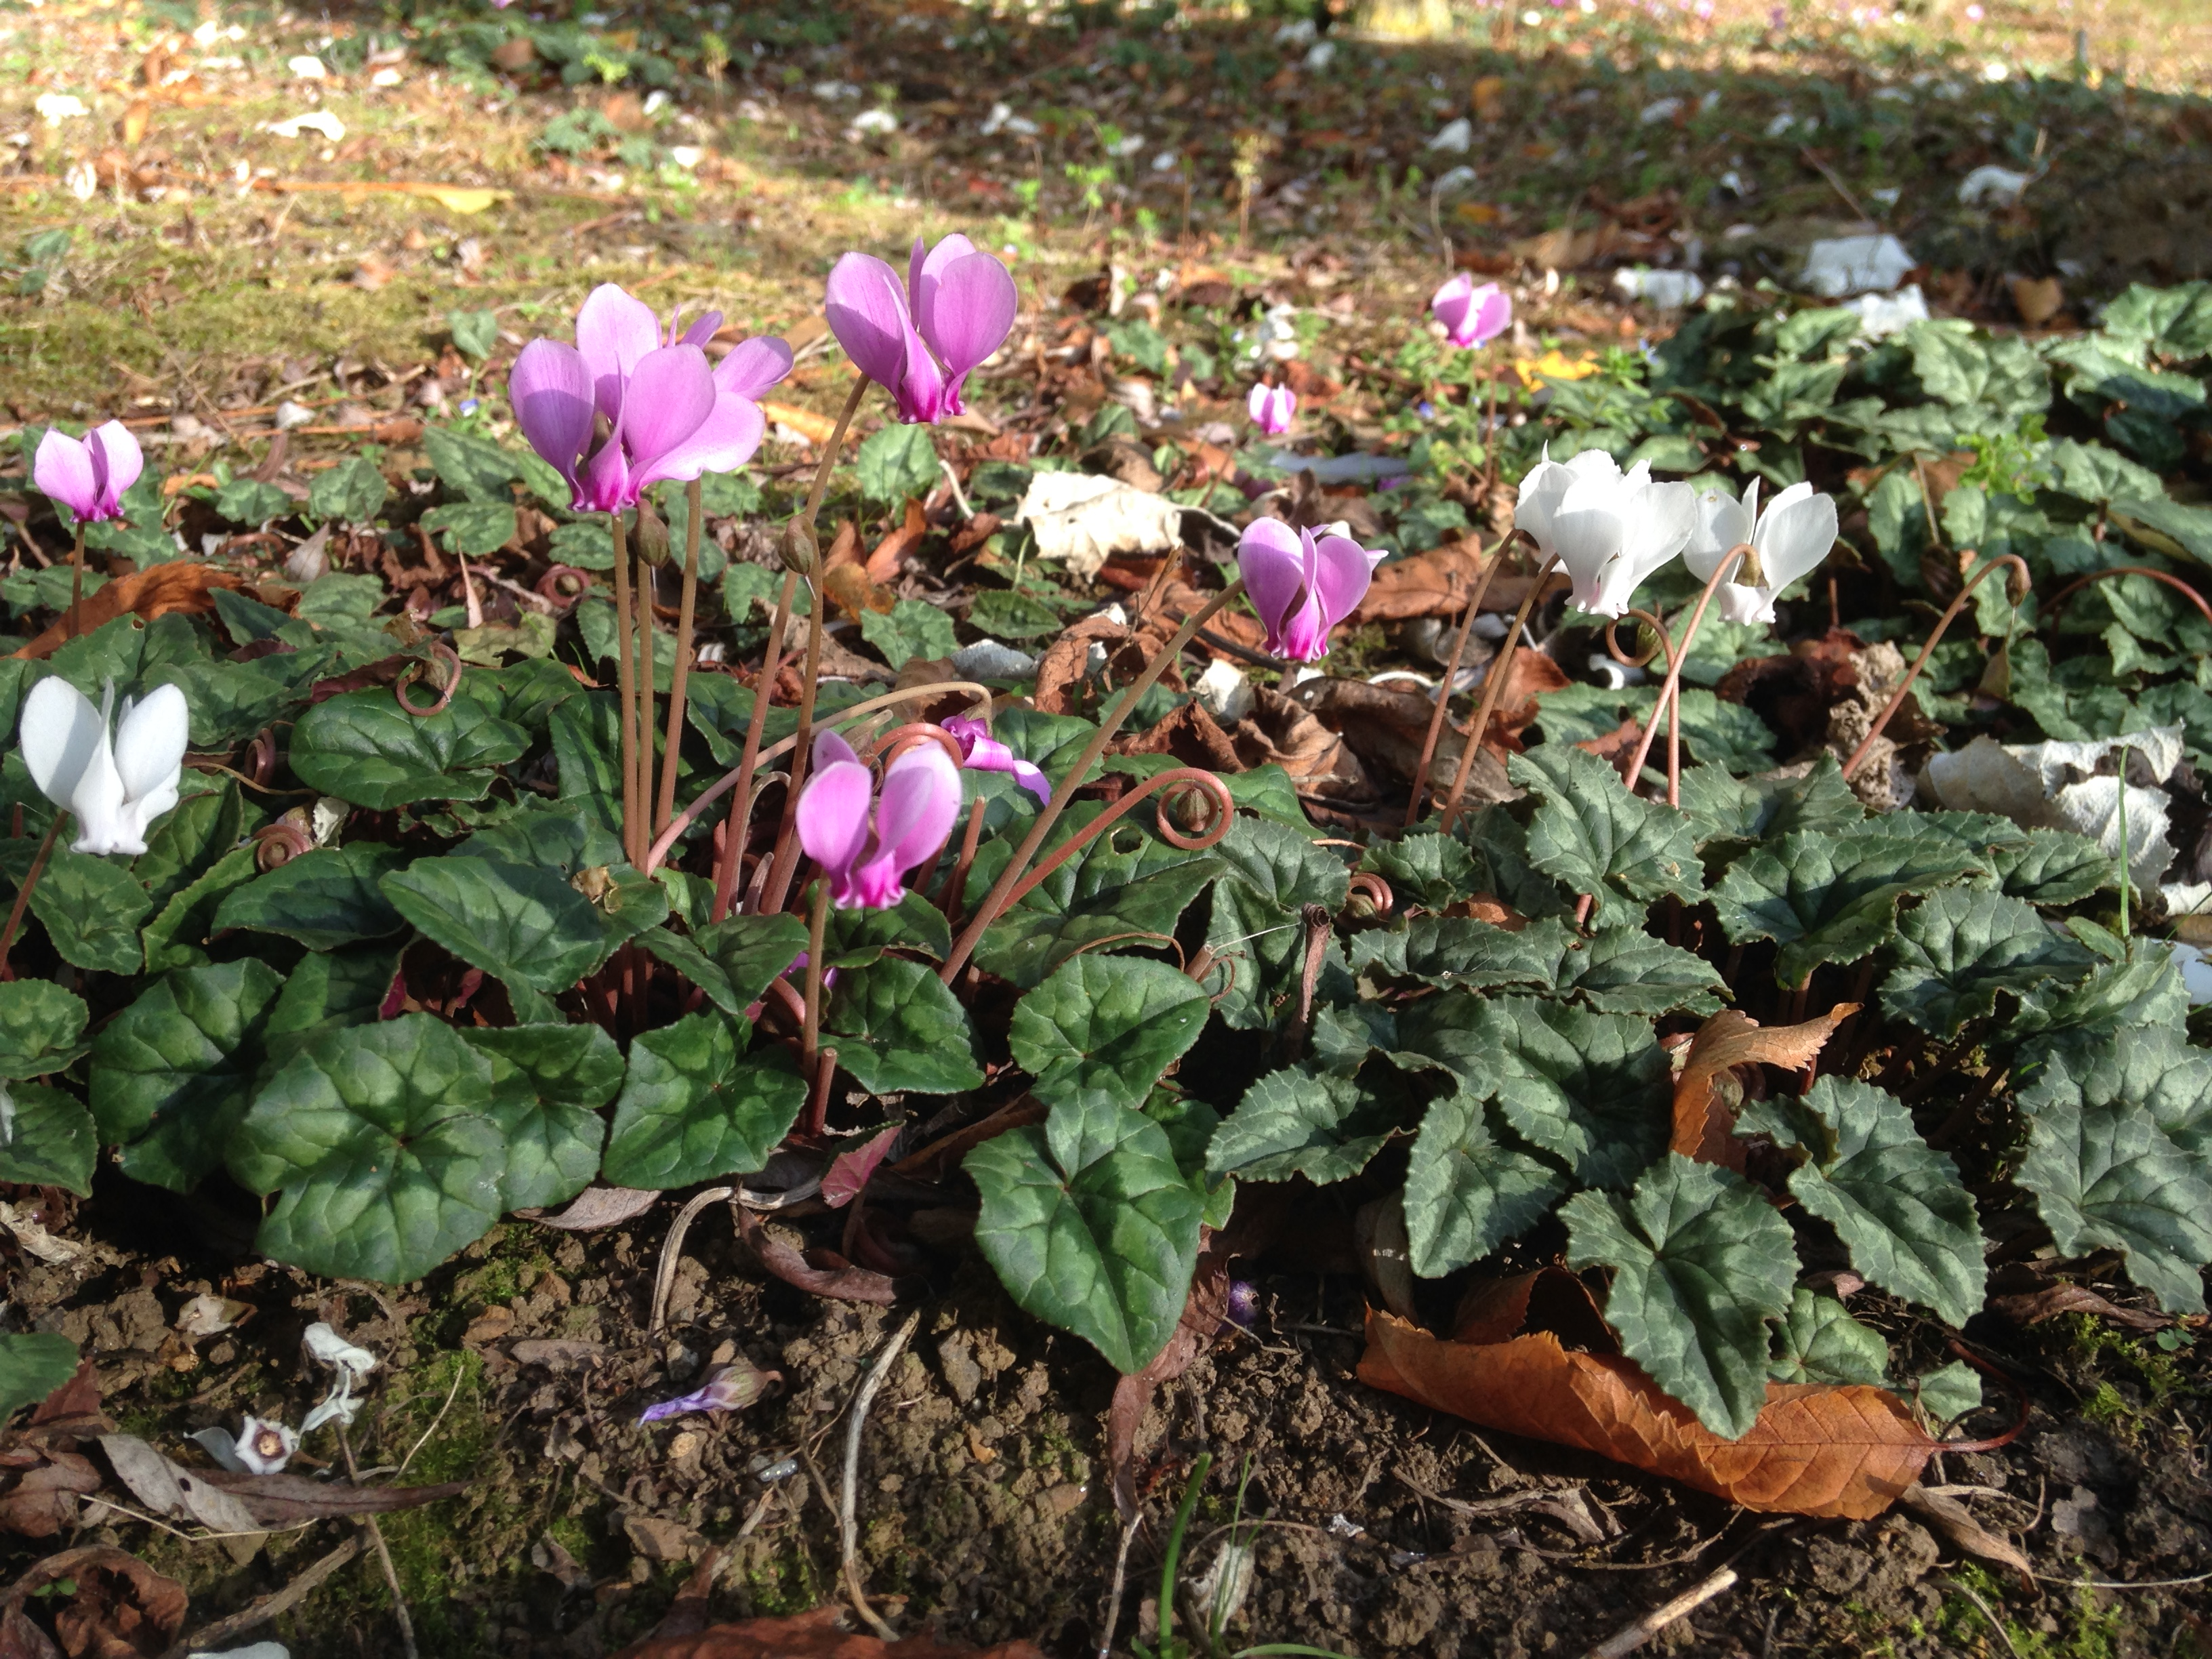 Pink and white flowered Cyclamen Hederifolium